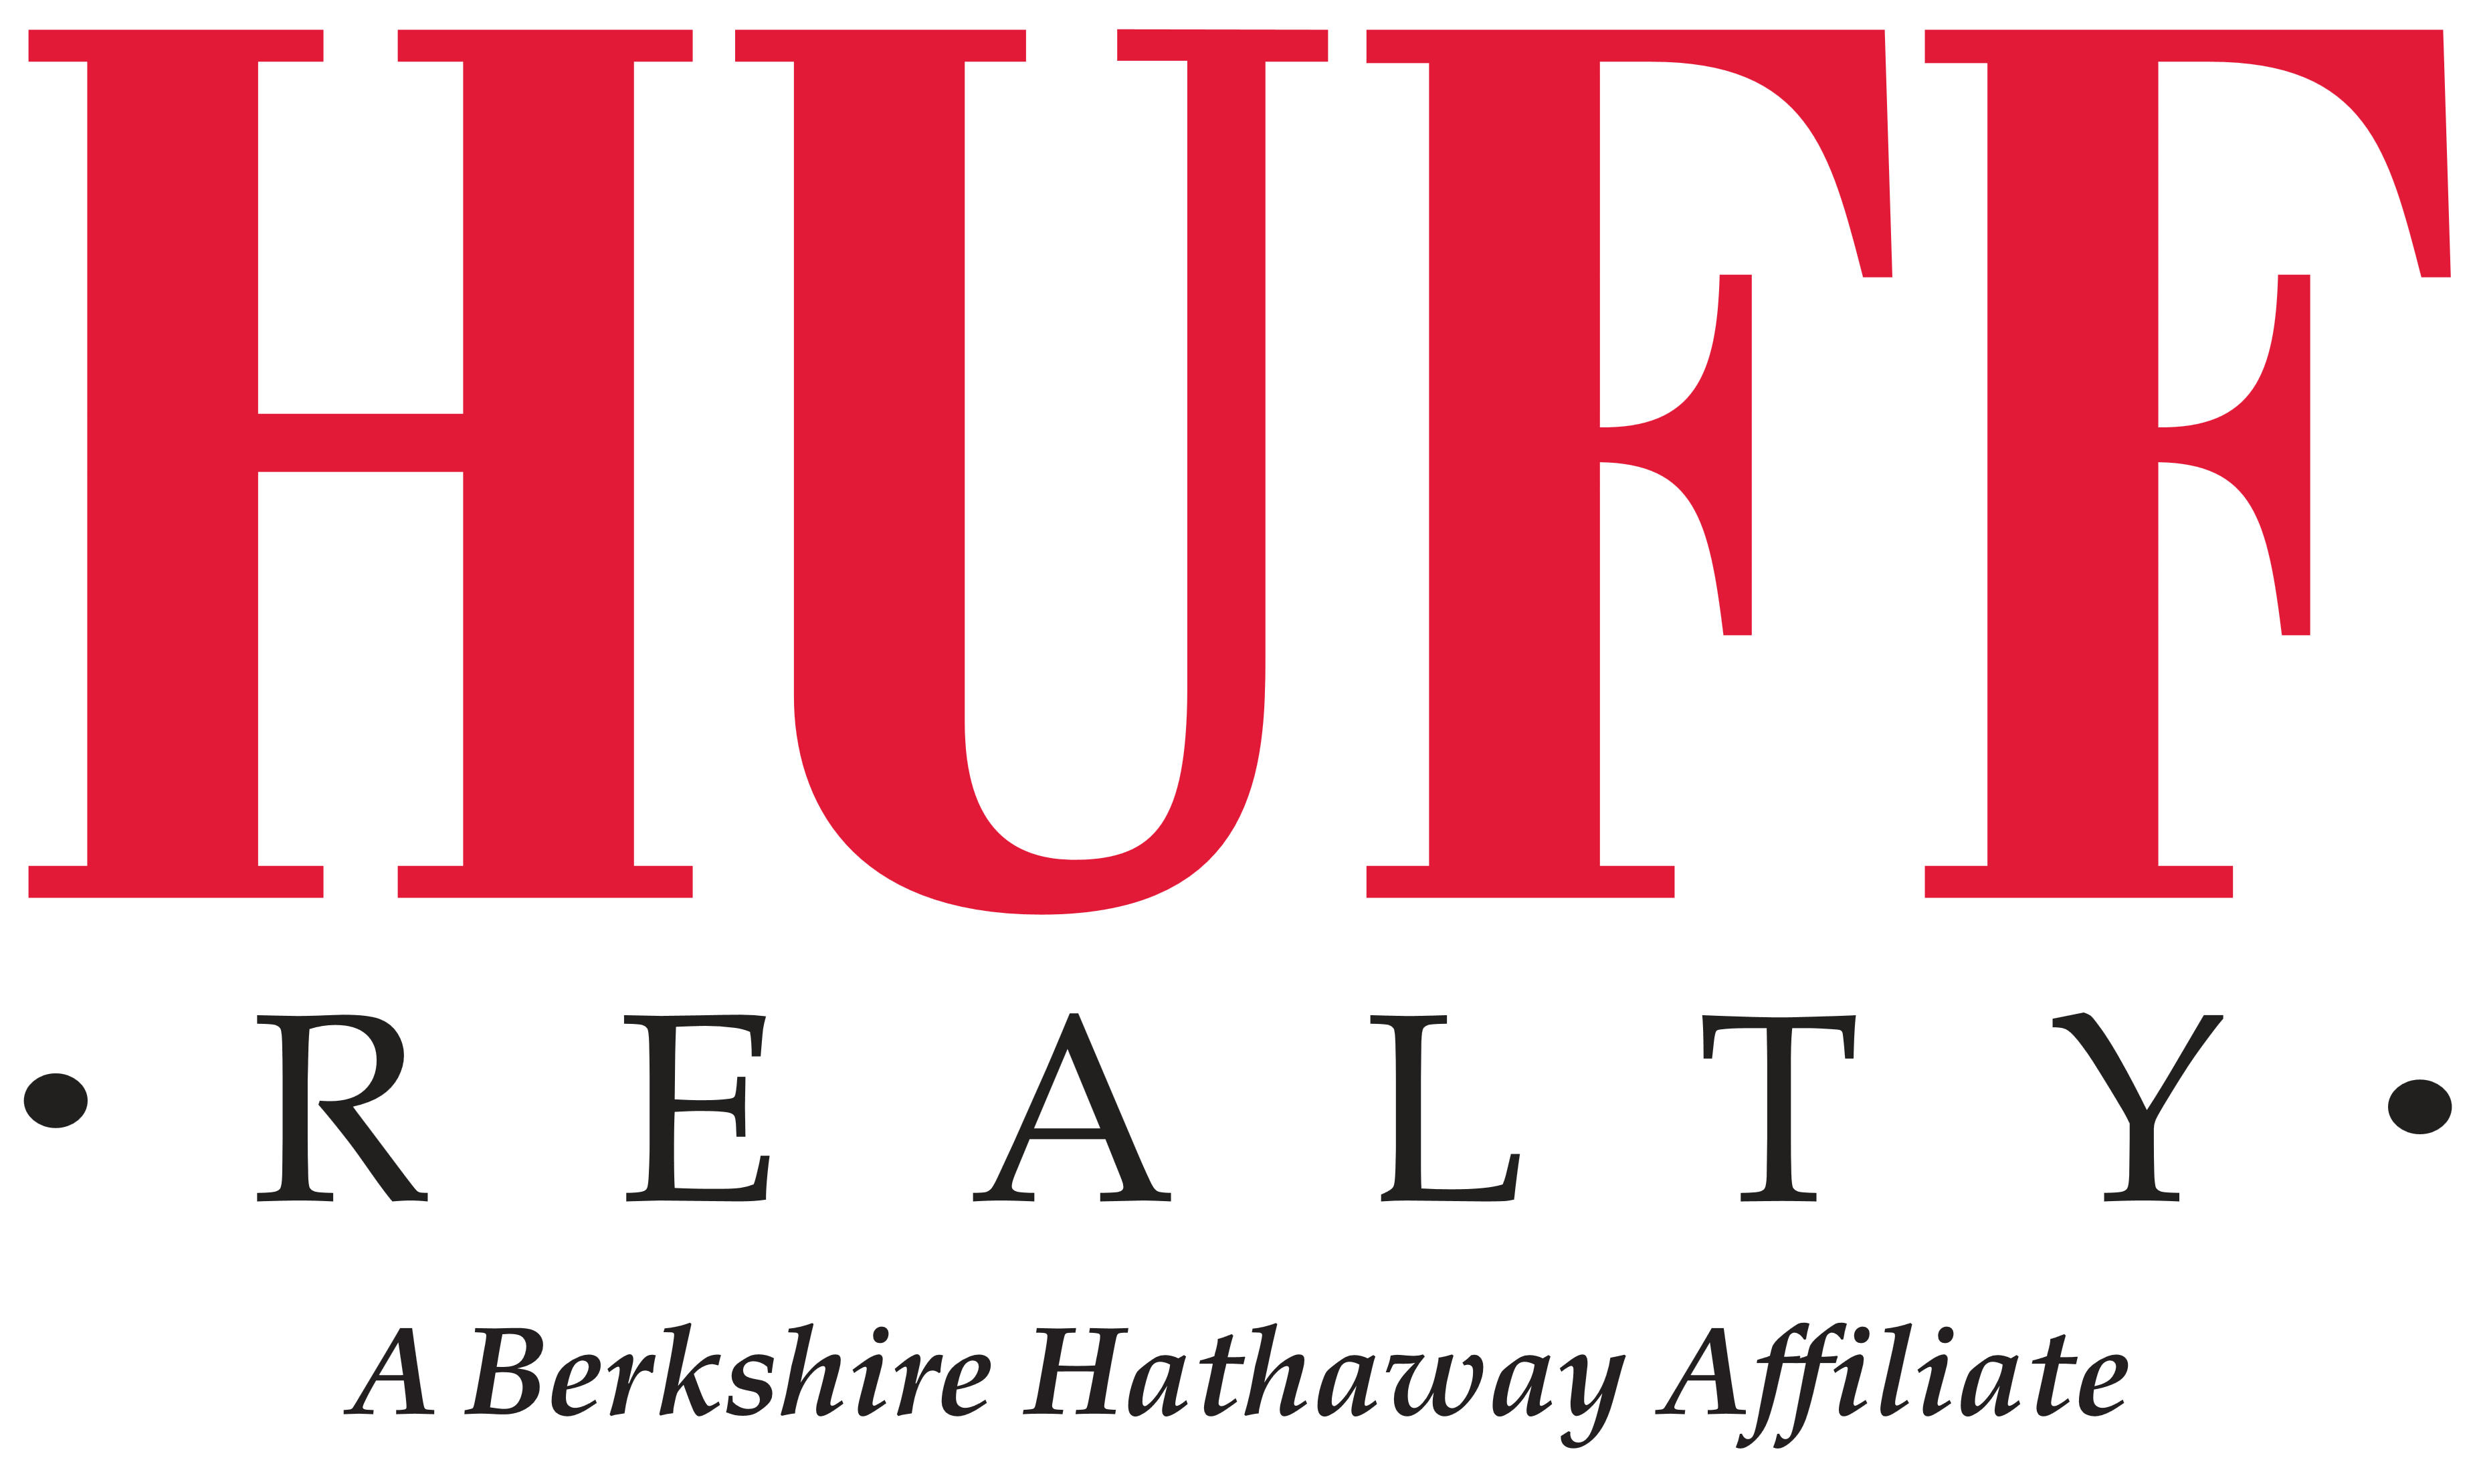 huff realty logos download